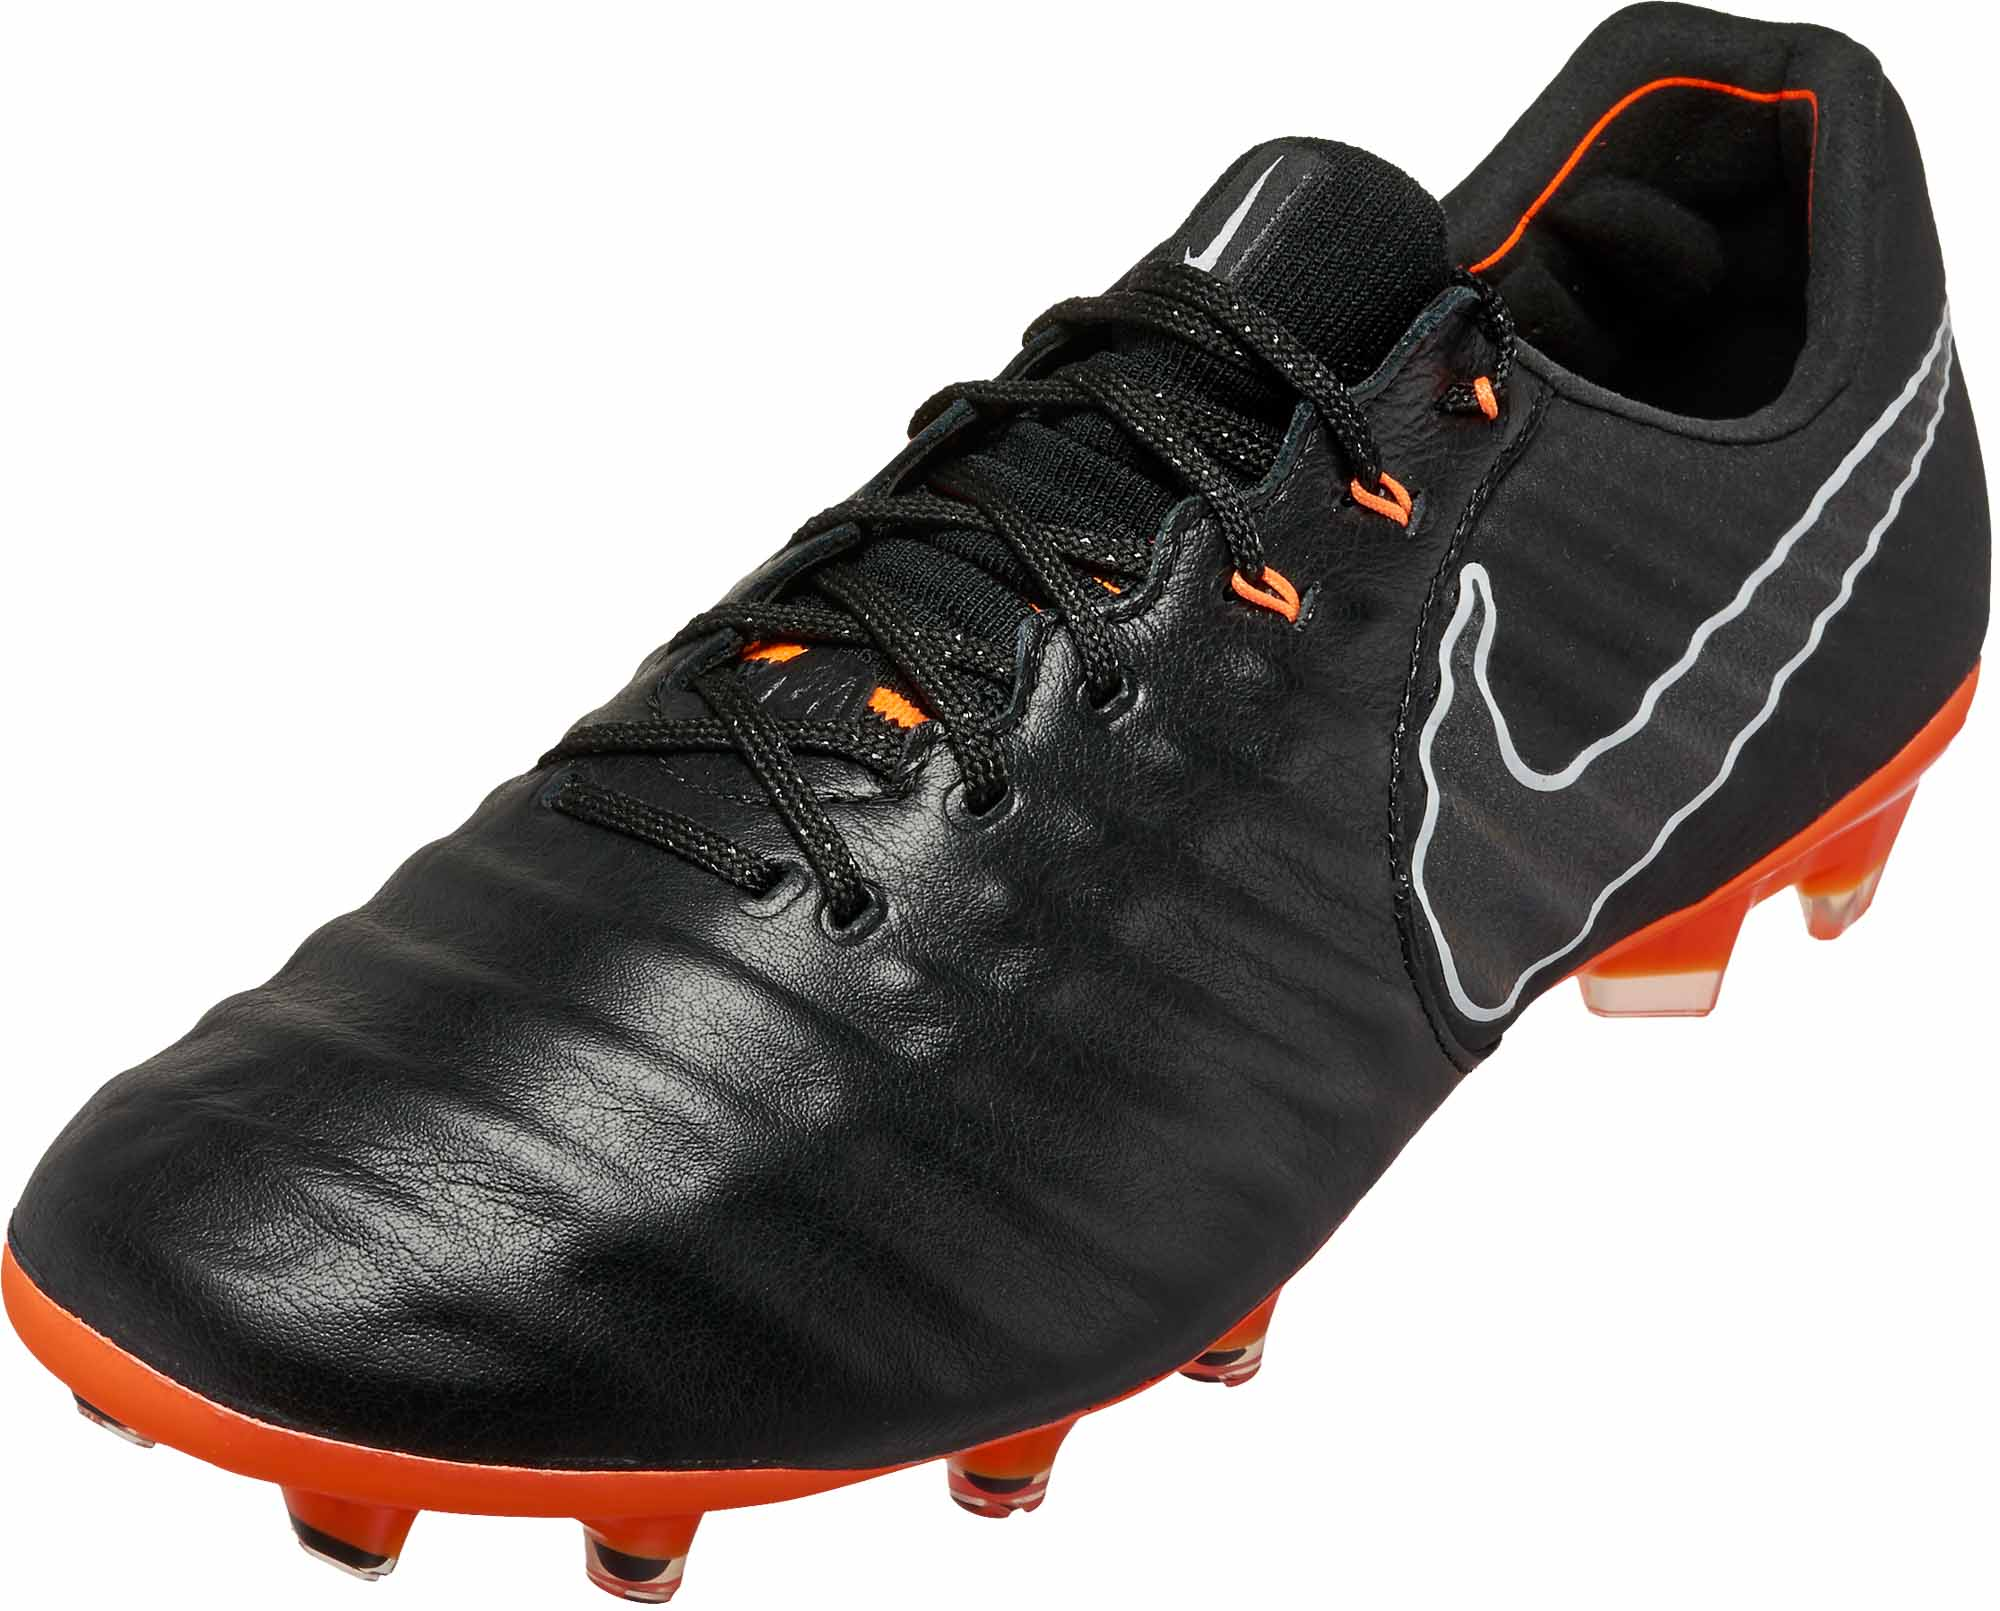 72f6eafdd7a1 Nike Tiempo Legend 7 Elite FG – Black/Total Orange